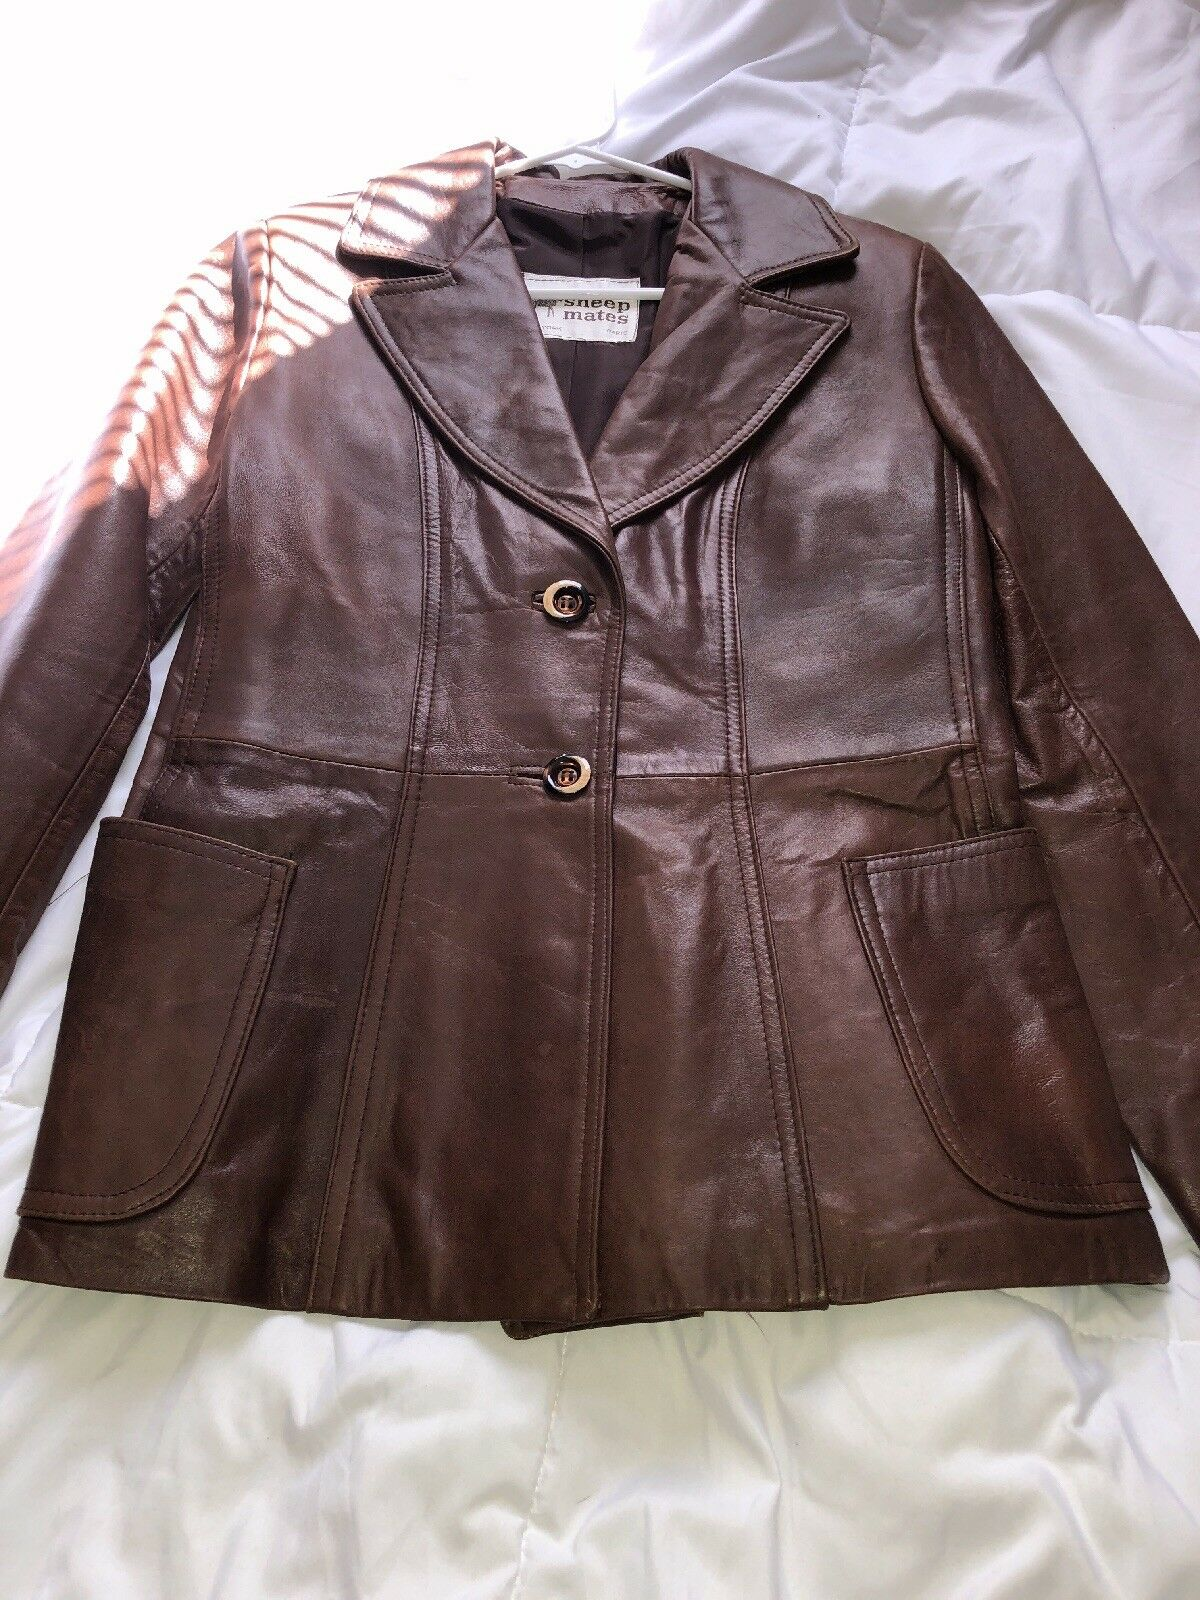 Sheep Mates Paris New York Women's Vintage Vintage Vintage darkbrown size 16 100%Leather 870063